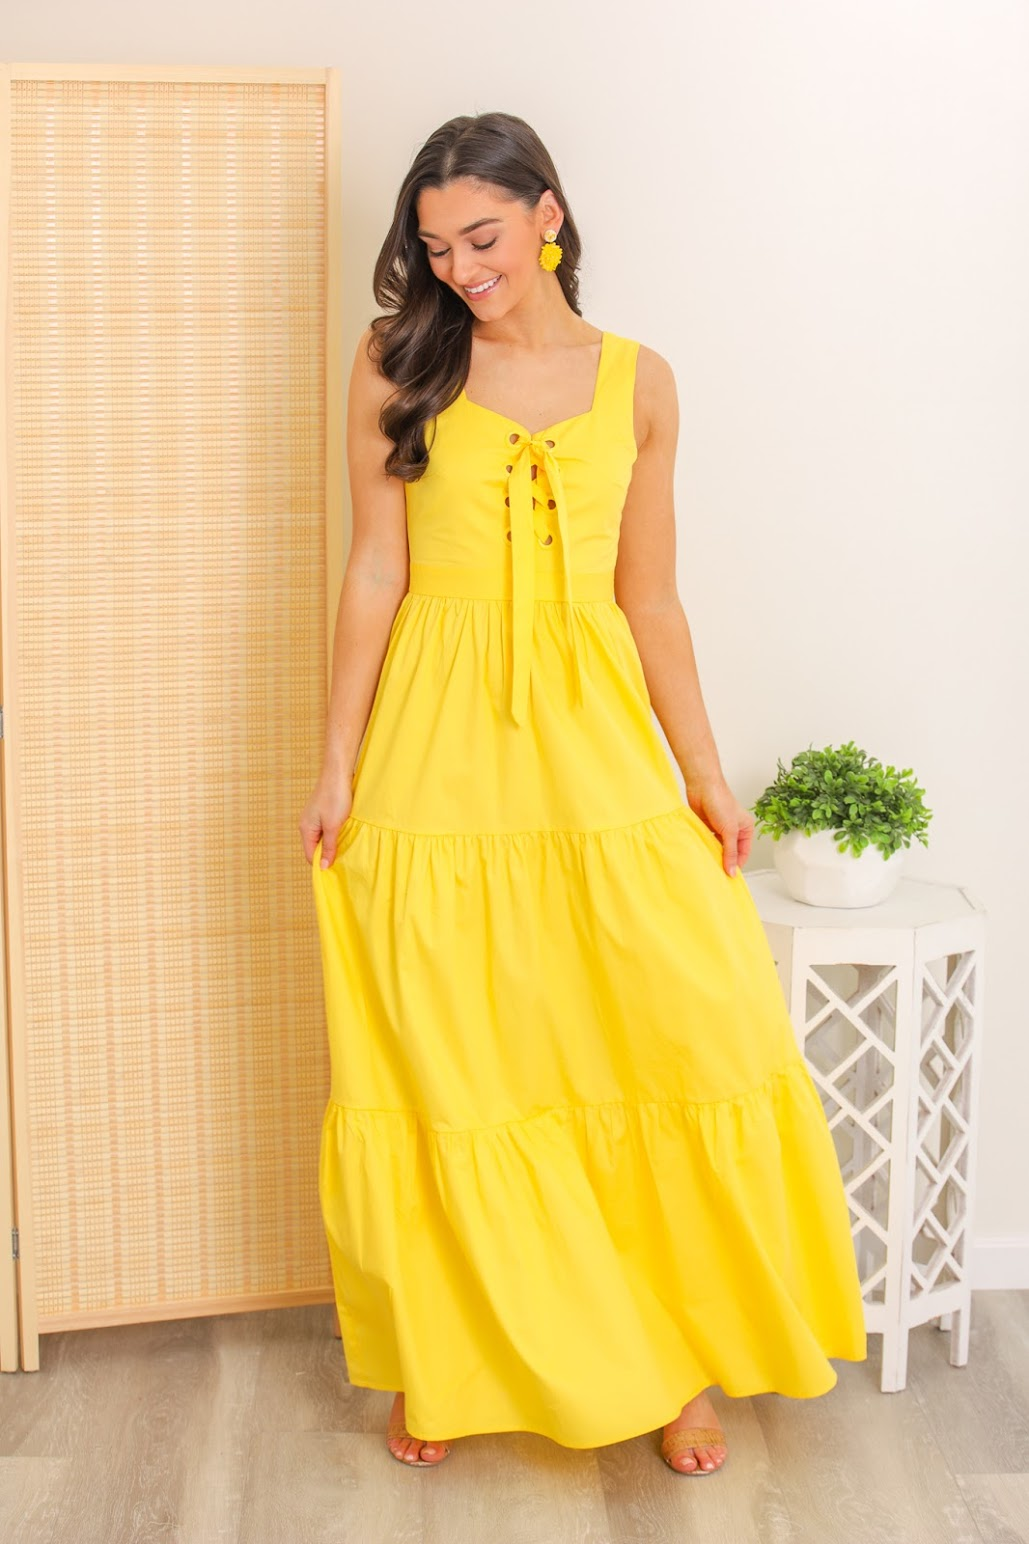 Sunny Disposition Maxi Dress